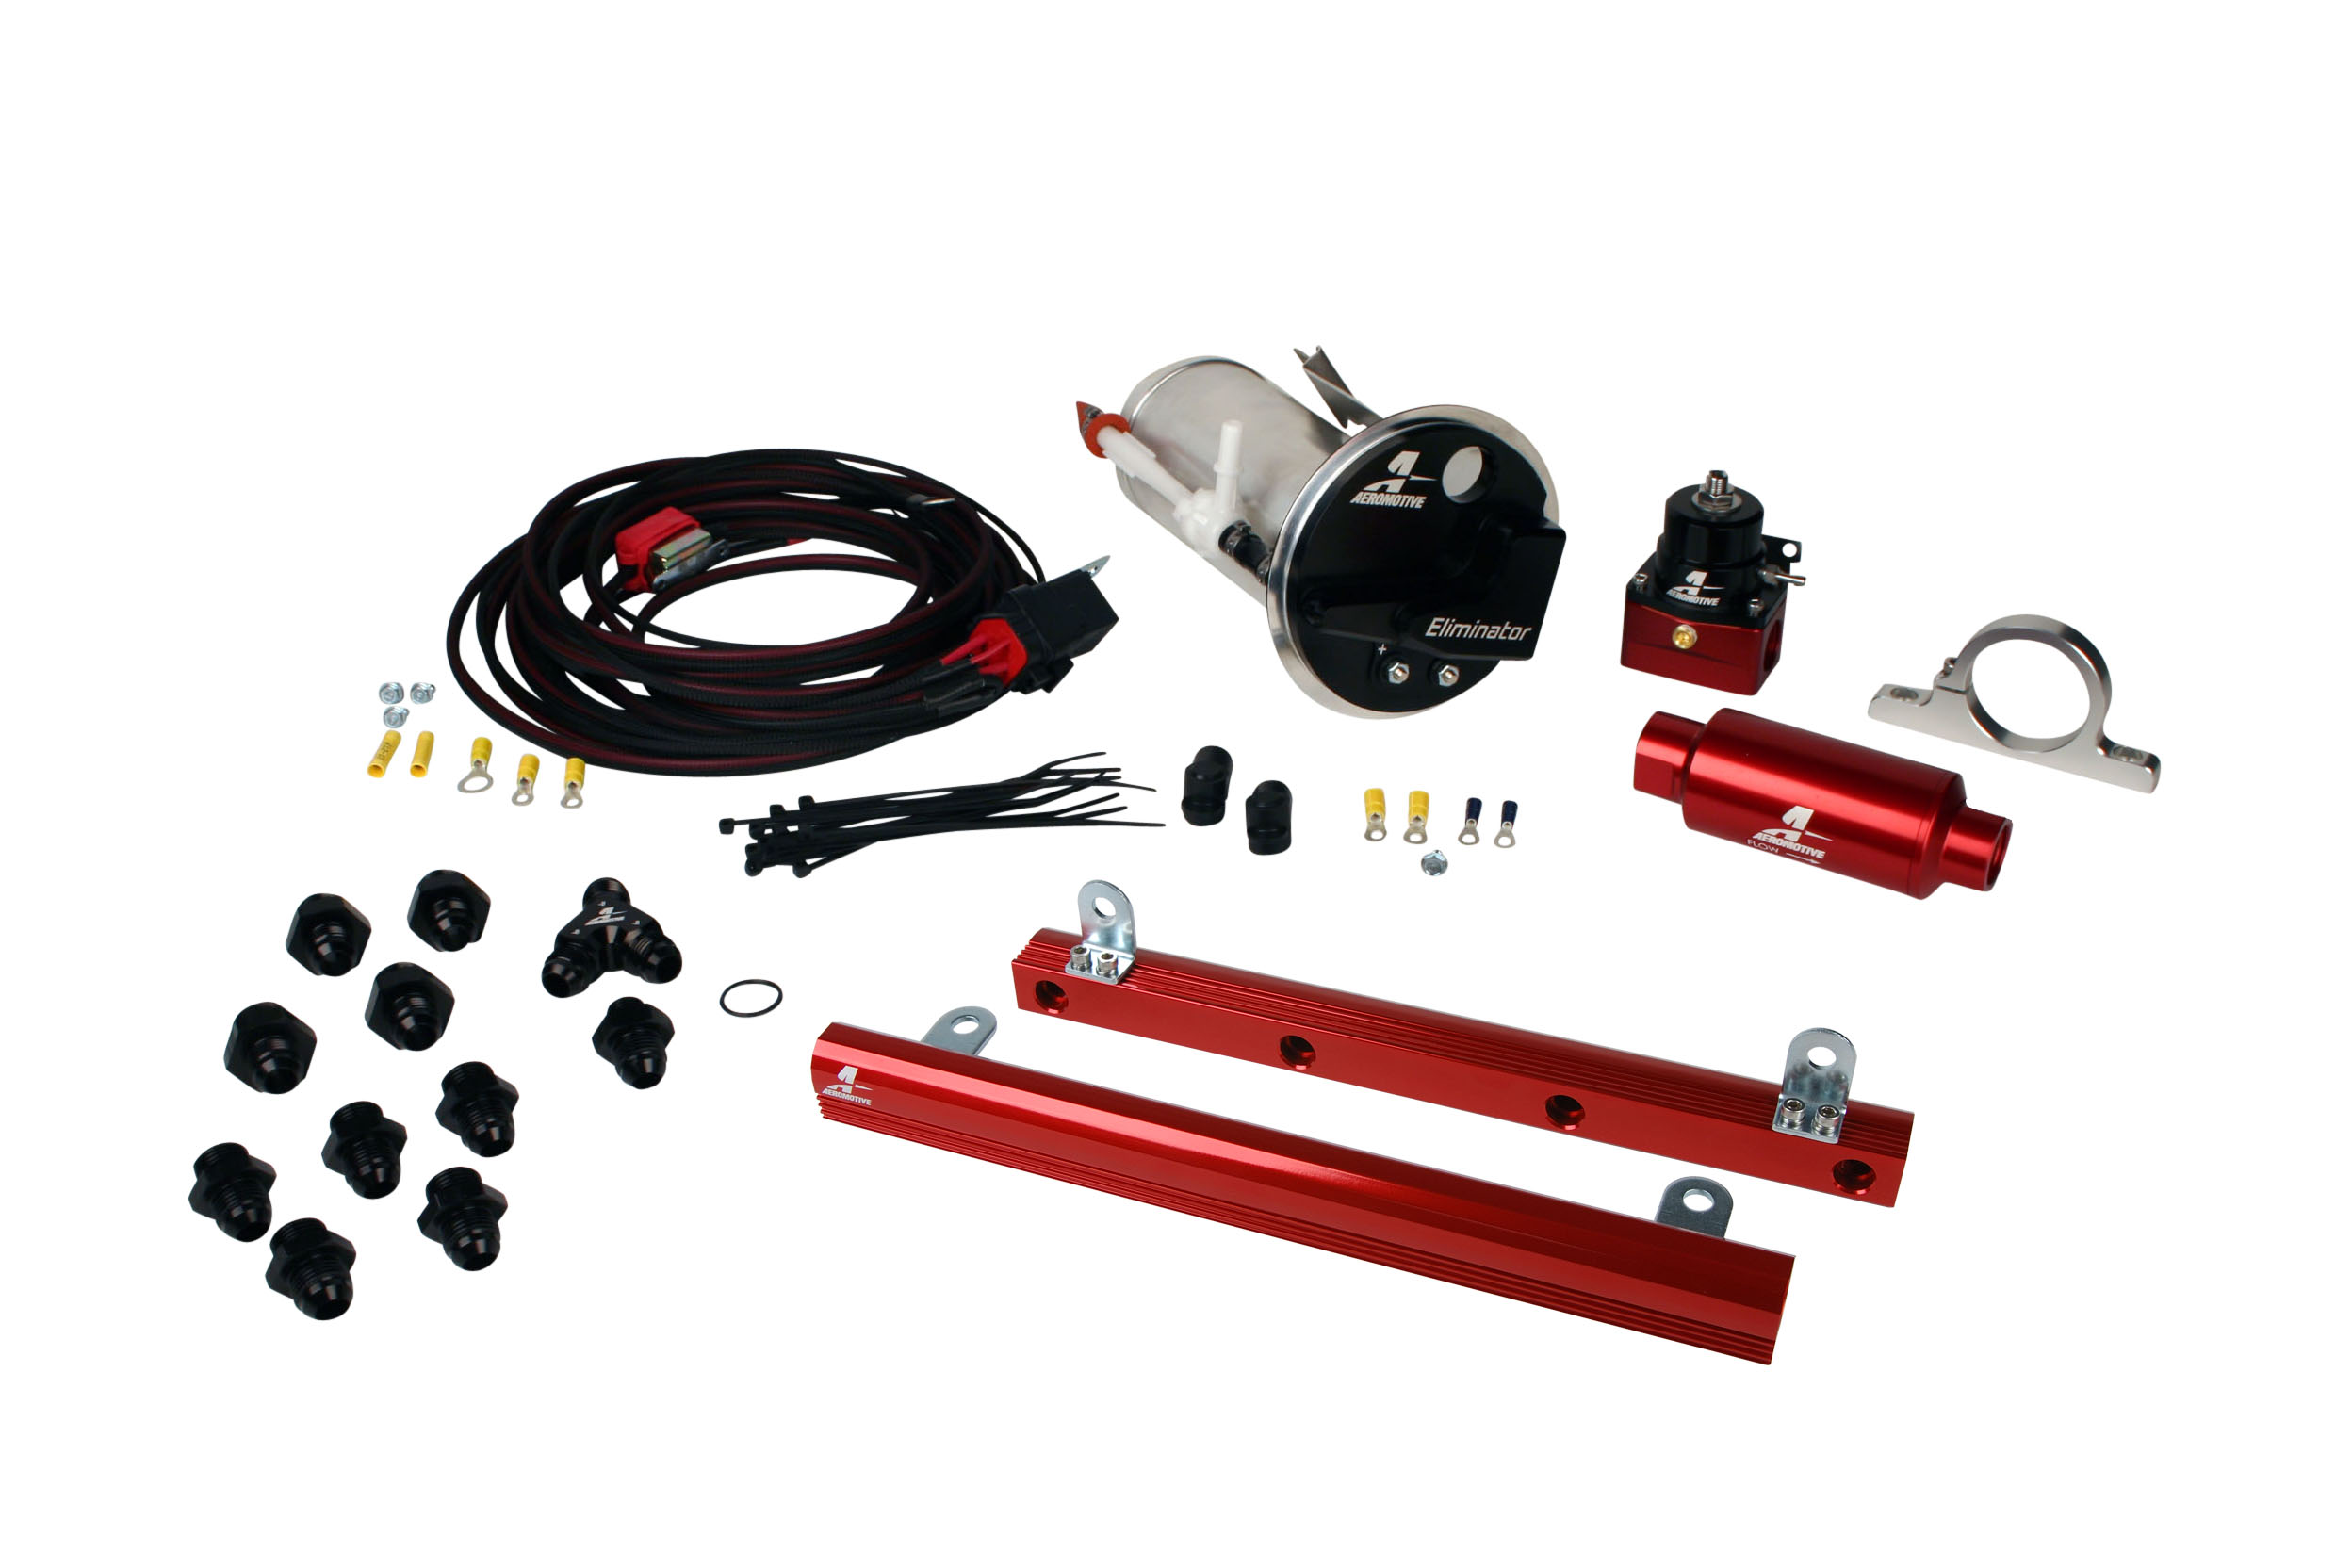 2005-2009 Ford Mustang GT Aeromotive Stealth Eliminator Race Fuel System w/5.0L 4-V Fuel Rails GT500 Swap